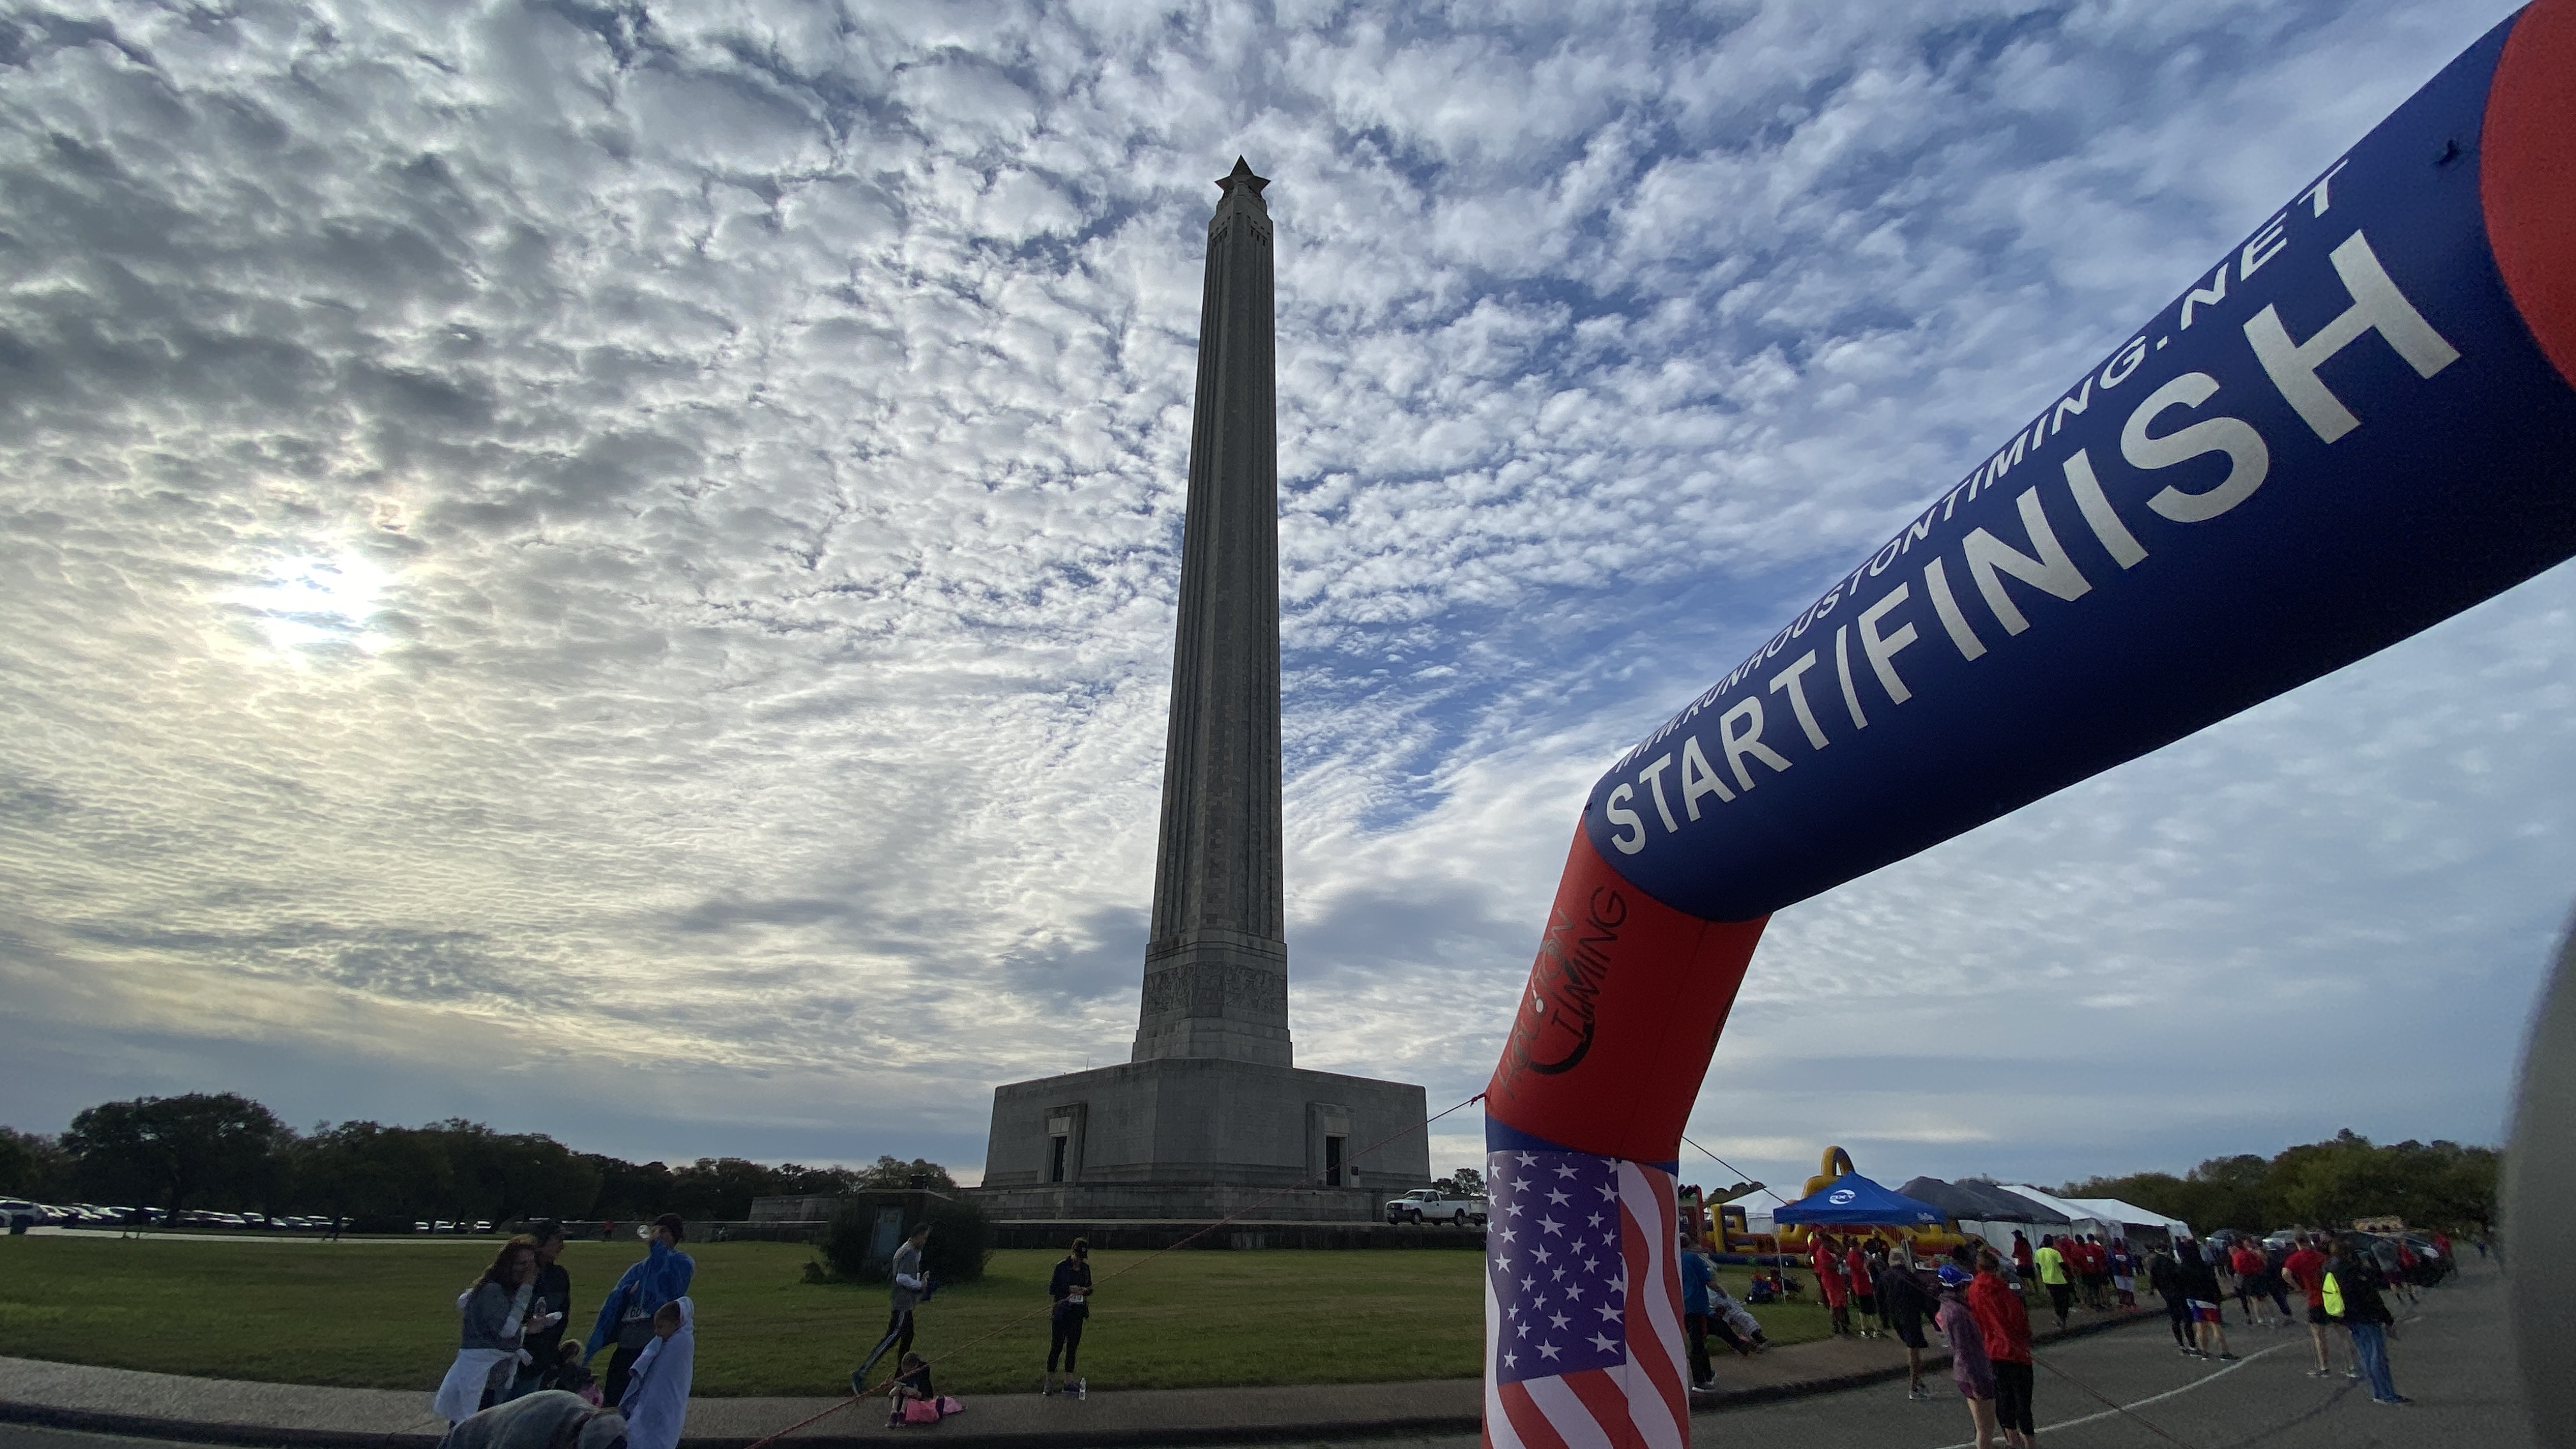 A finish line stands over a road, with the tall San Jacinto Monument backed by fluffy clouds in the background, with pop-up tents and people standing and moving along the road.